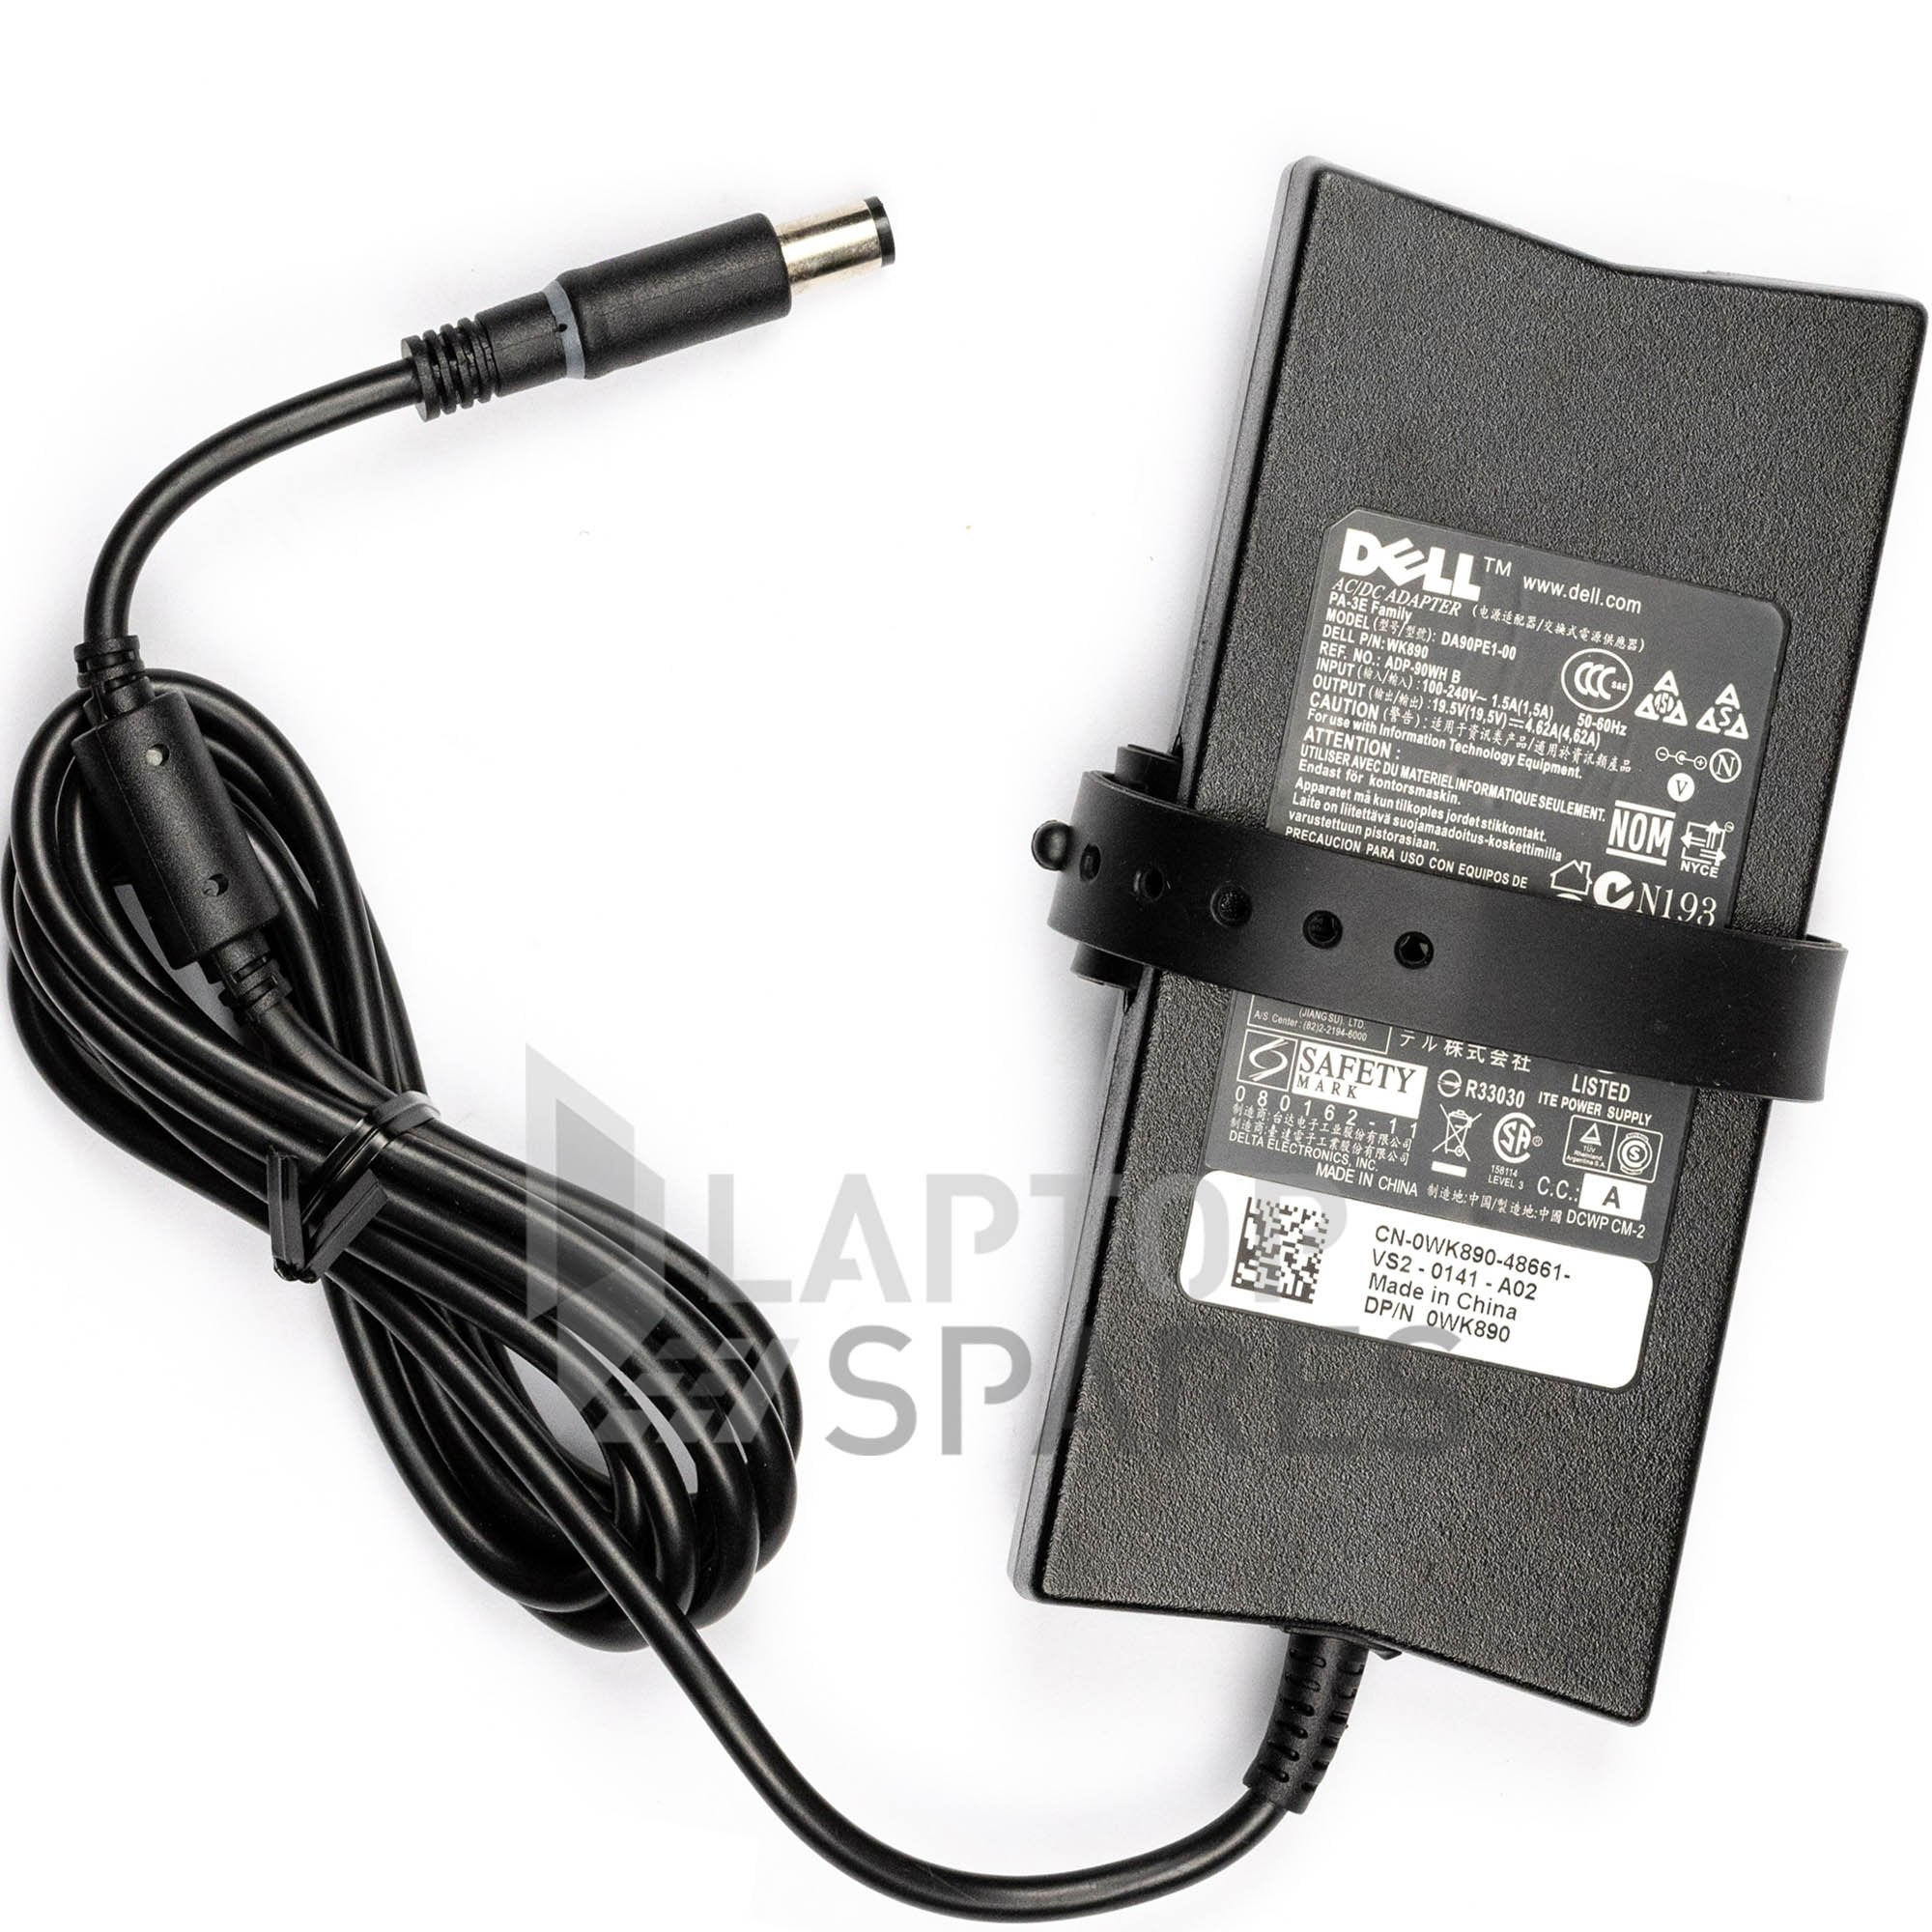 Dell Inspiron N5010 N5030 N5040 Laptop Slim AC Adapter Charger